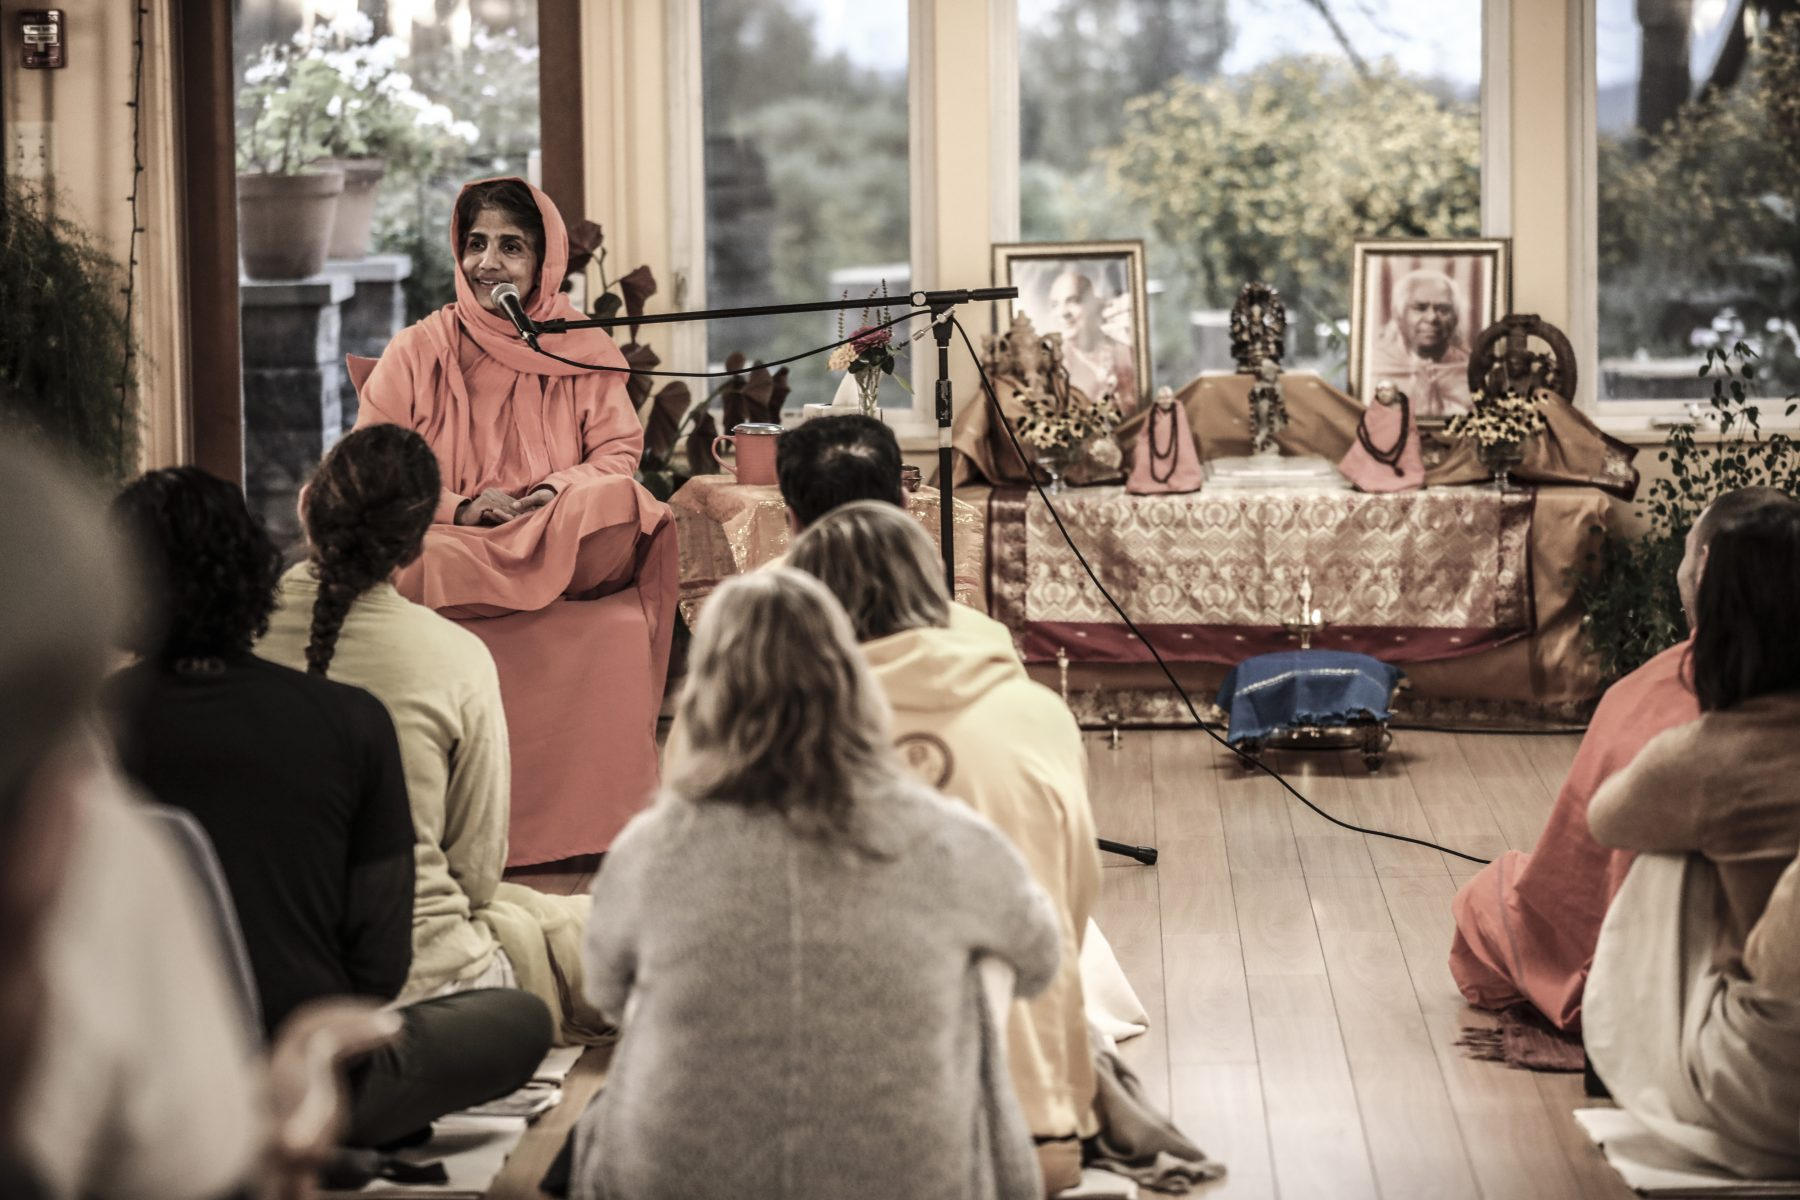 Vedanta for Everyday Life at the Sivananda Yoga Ranch